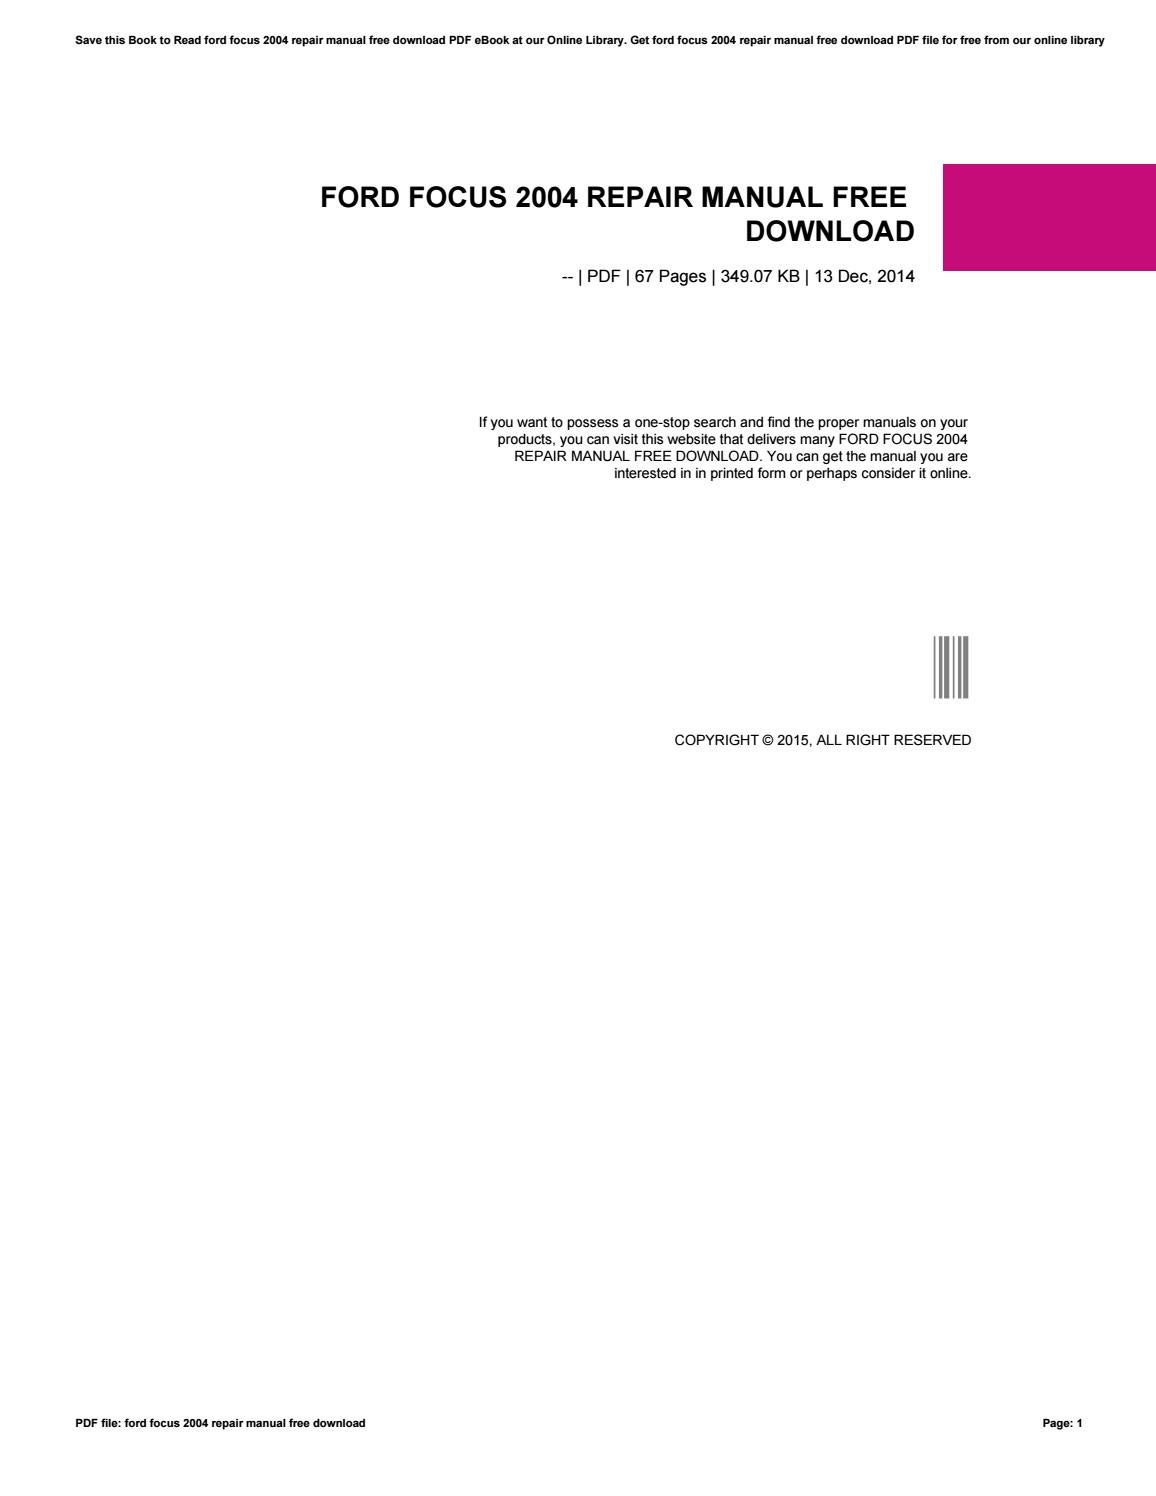 ford focus 2014 workshop manual pdf user guide manual that easy to